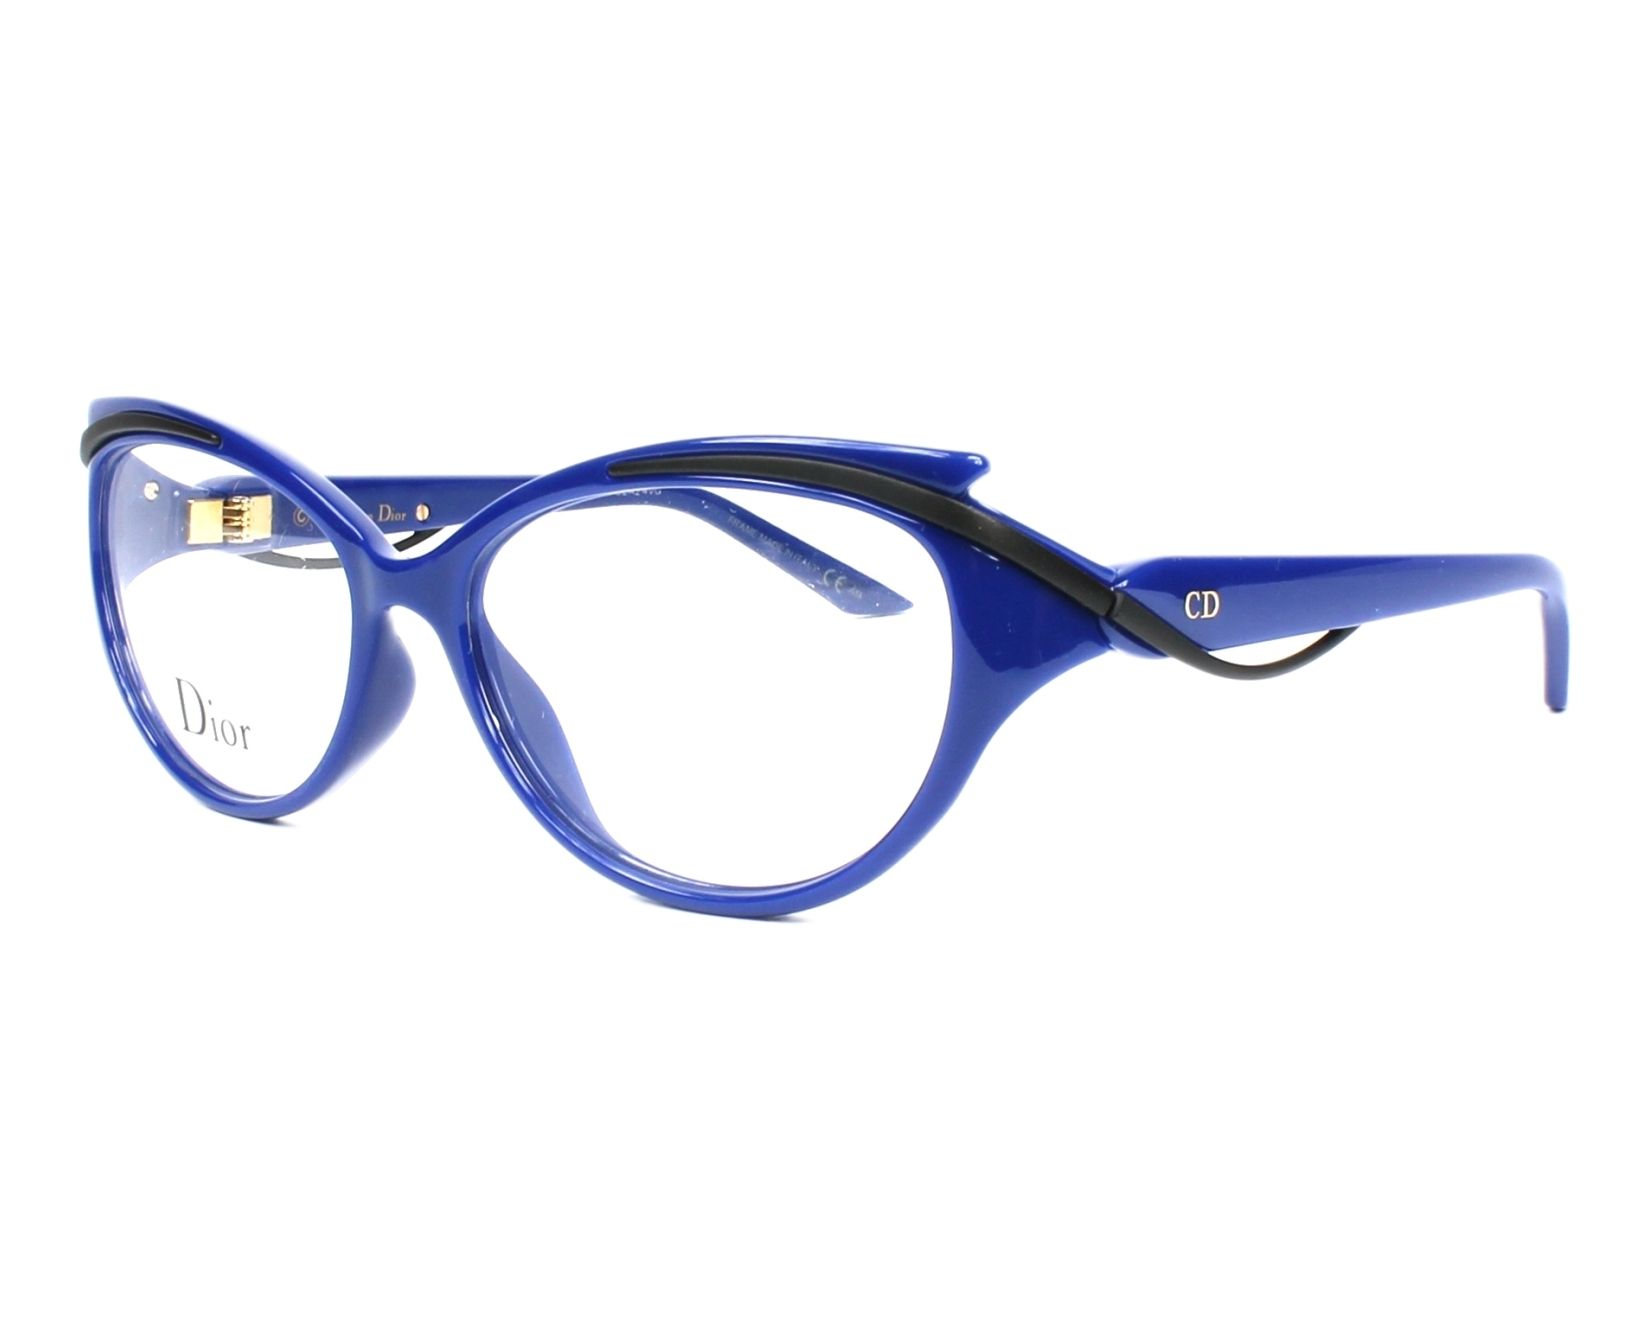 661485a467c Christian Dior Eyeglasses Blue CD-3278 90D - Visionet US